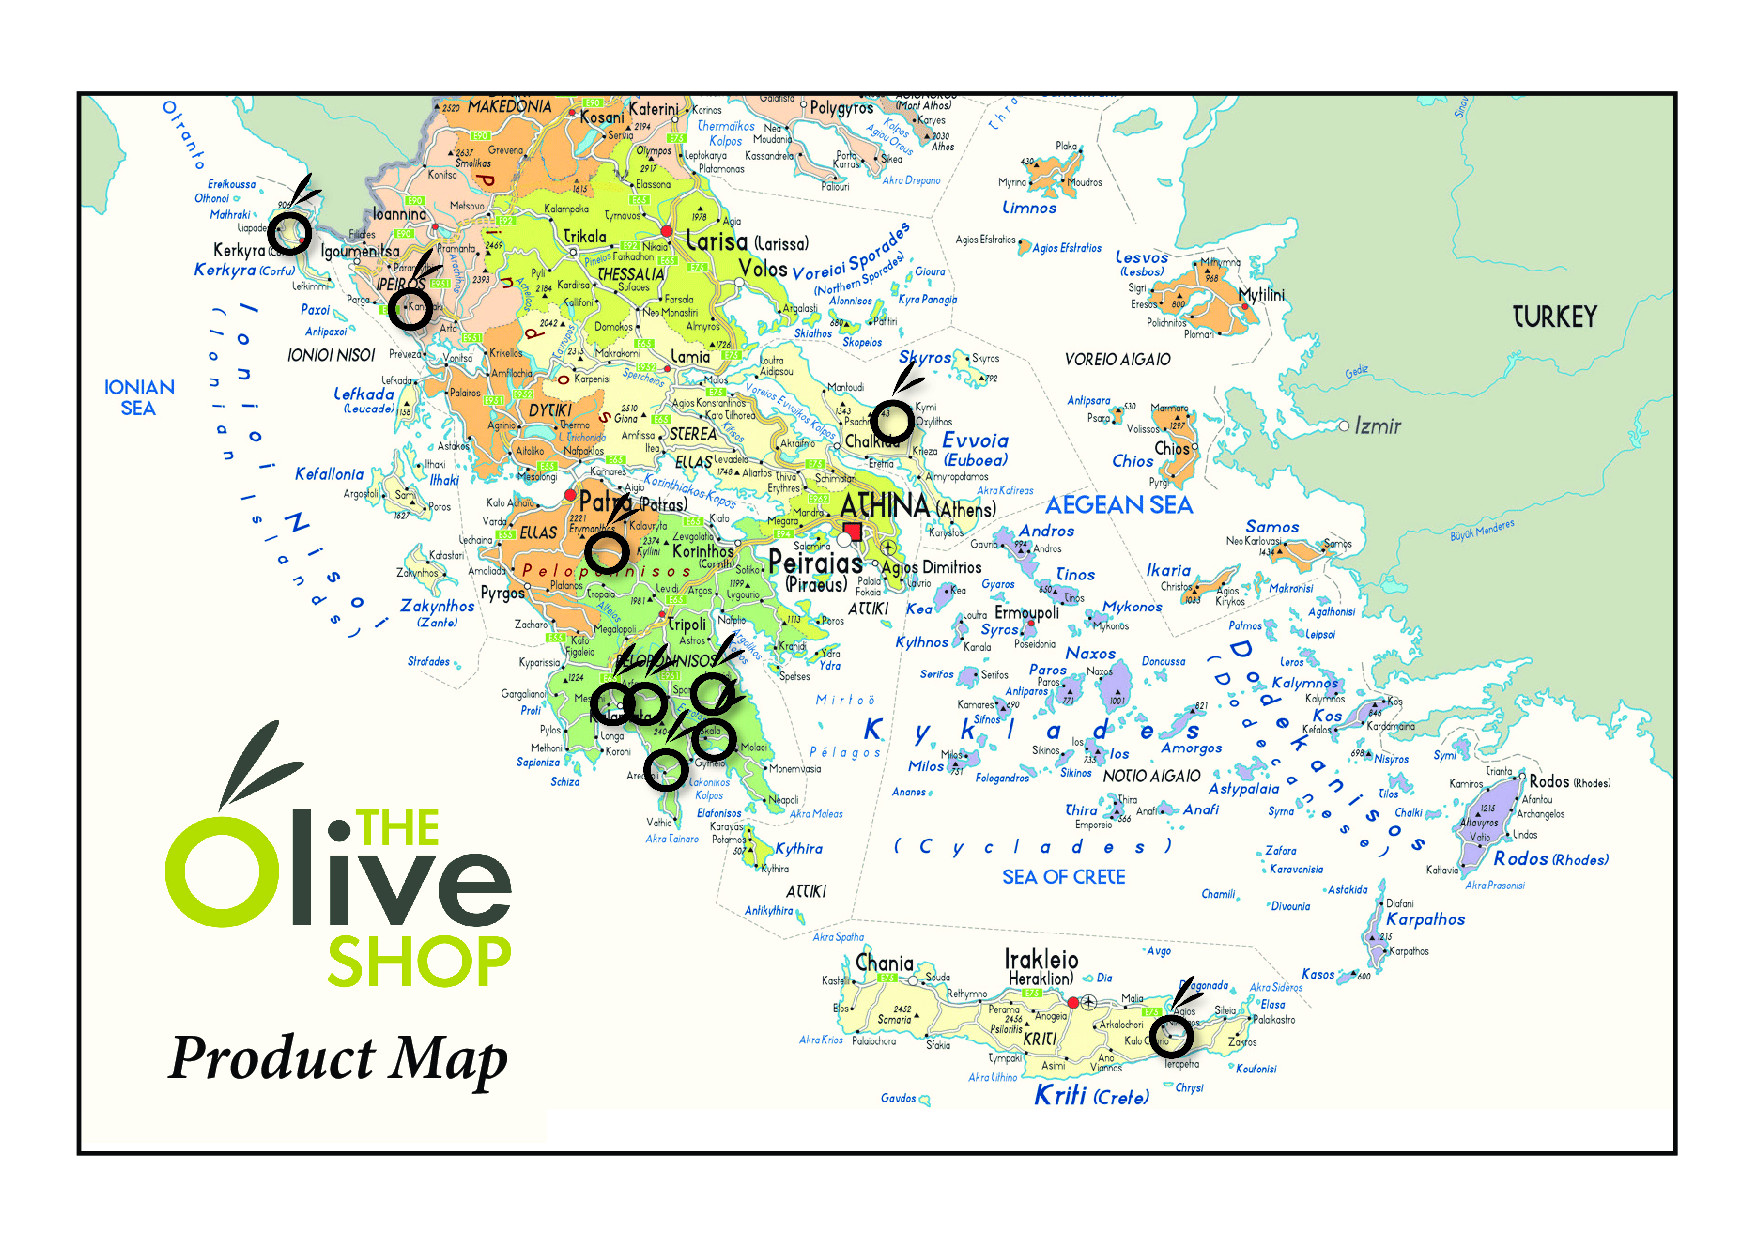 The Olive Shop Map